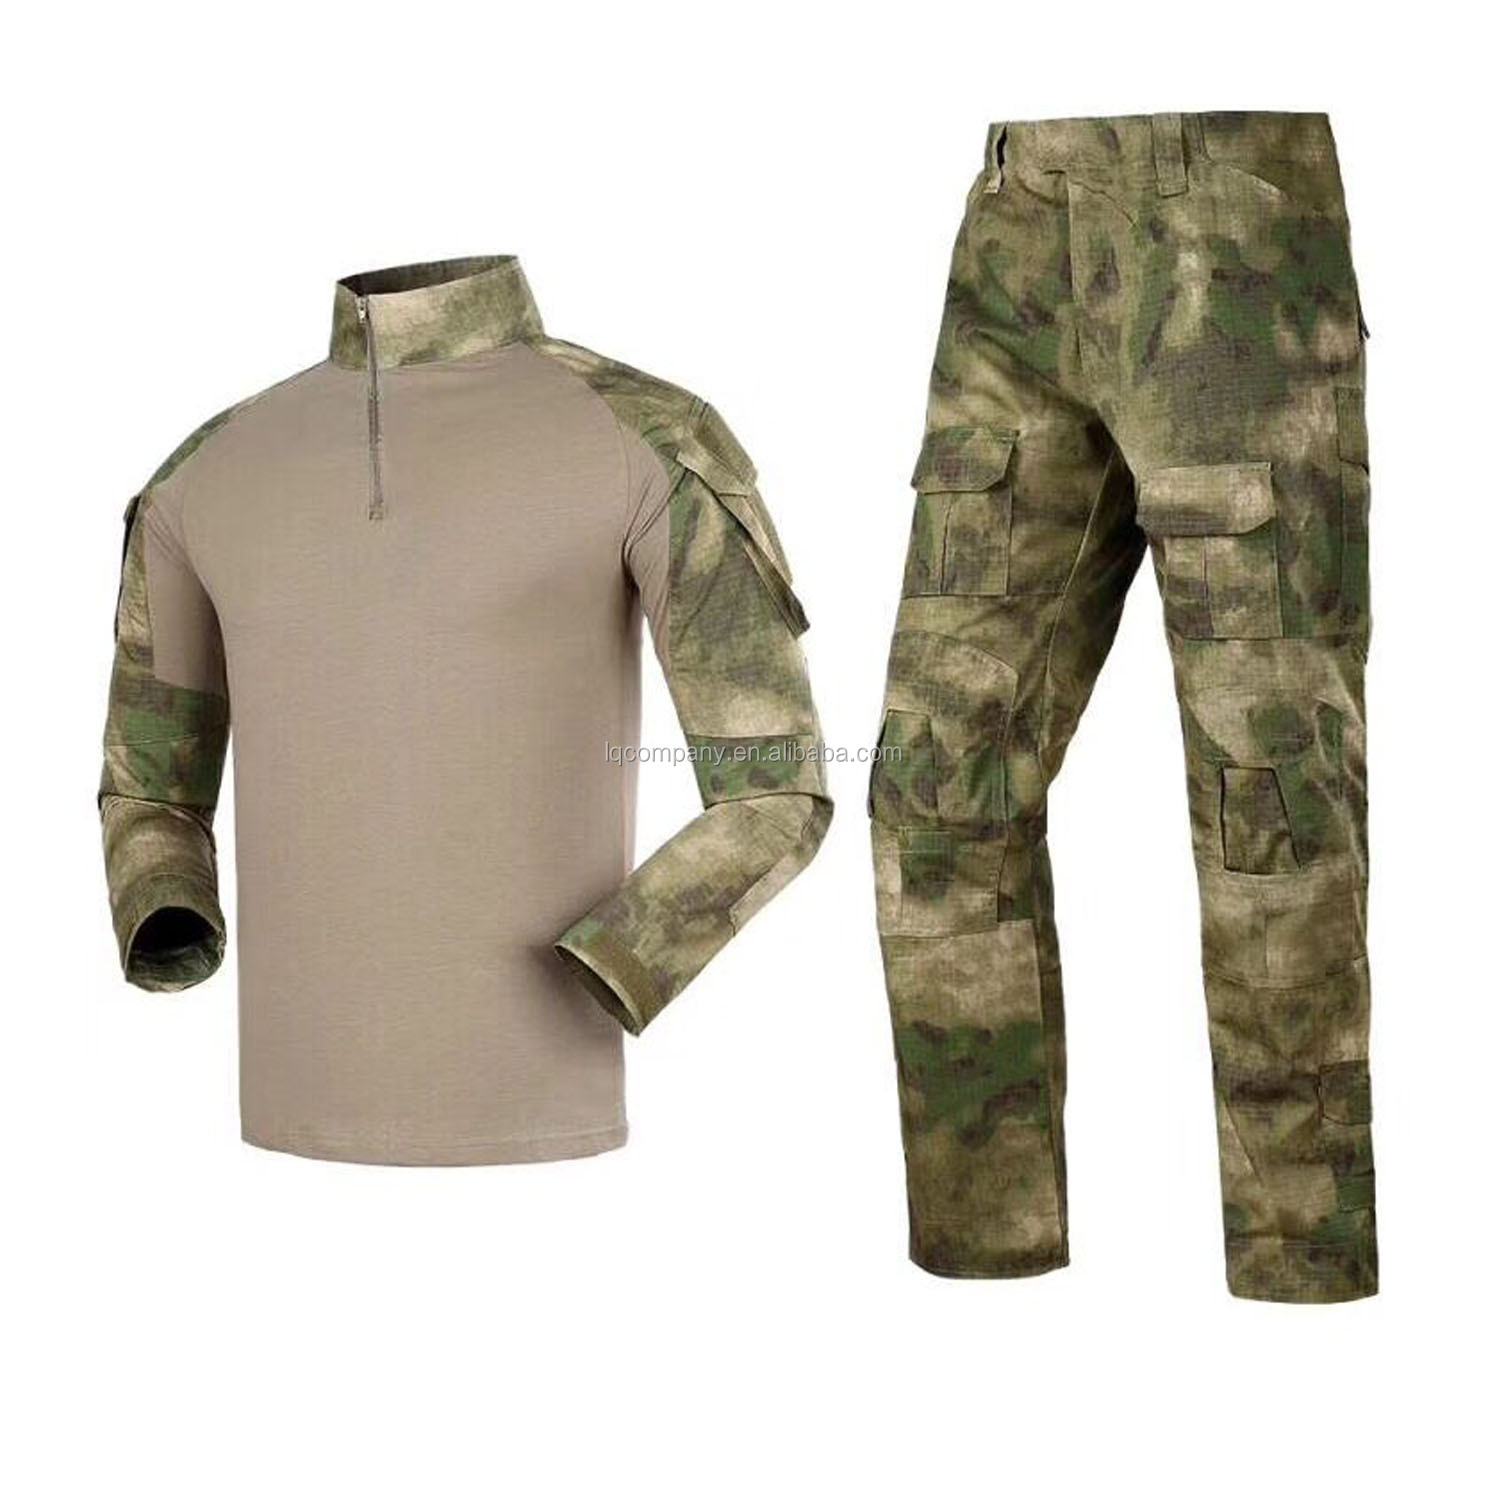 Army Uniform Desert Camouflage with Good Quality Inventory